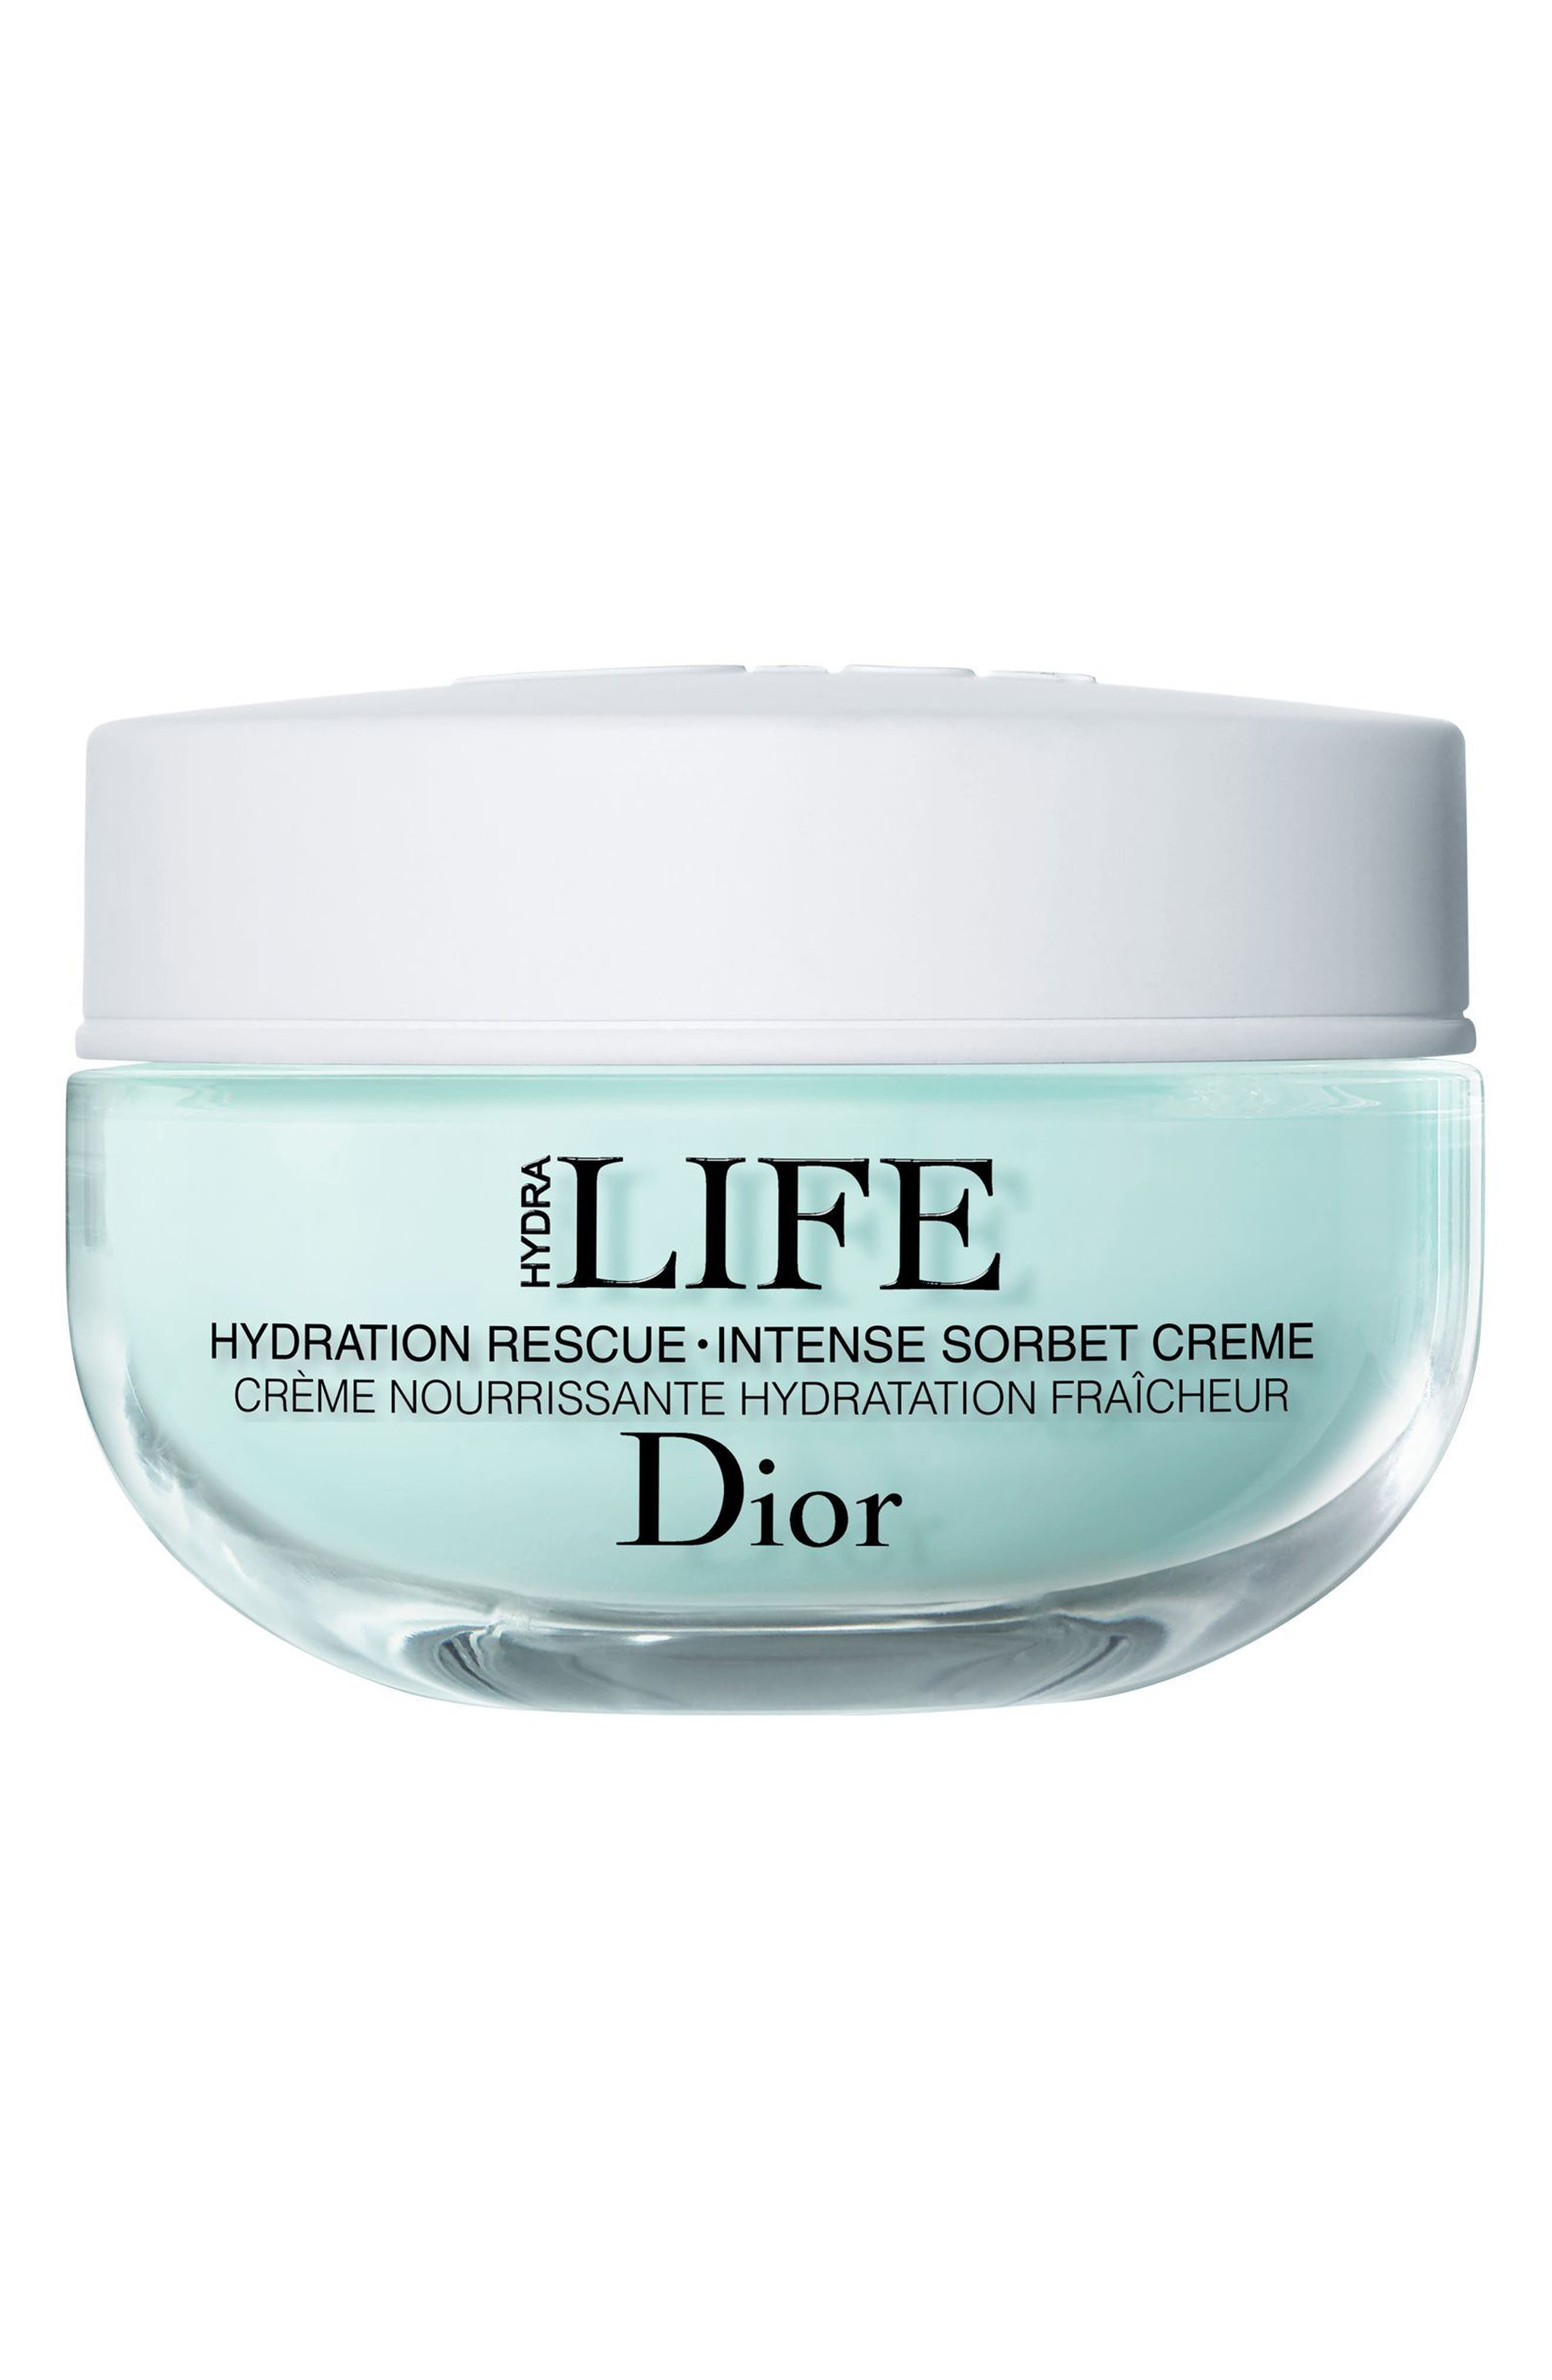 Hydra Life Hydration Rescue Intense Sorbet Creme,                         Main,                         color, No Color